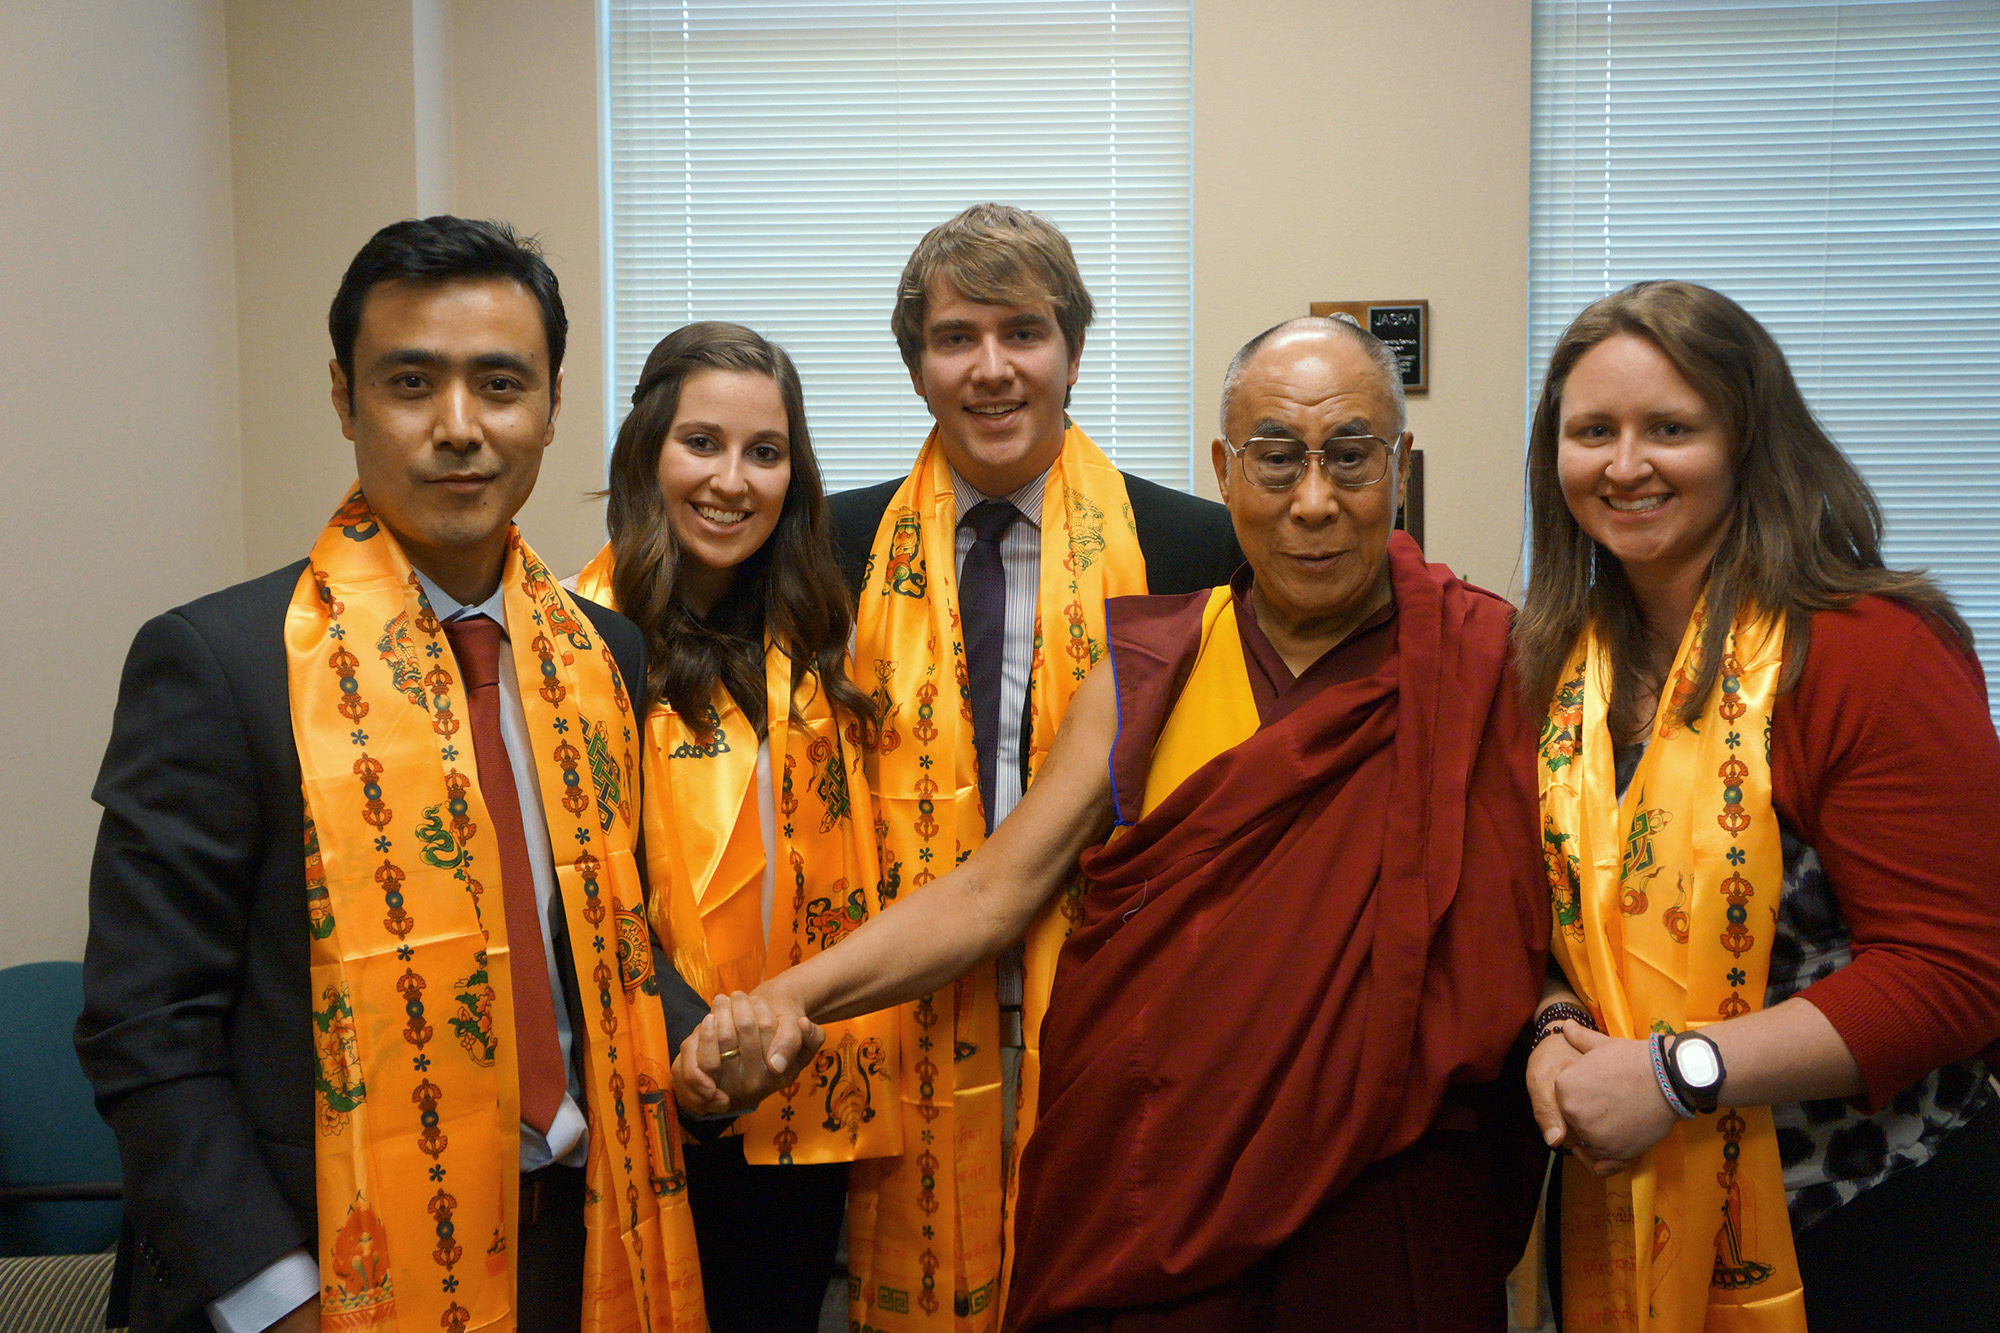 Photo: CU students meet Dalai Lama